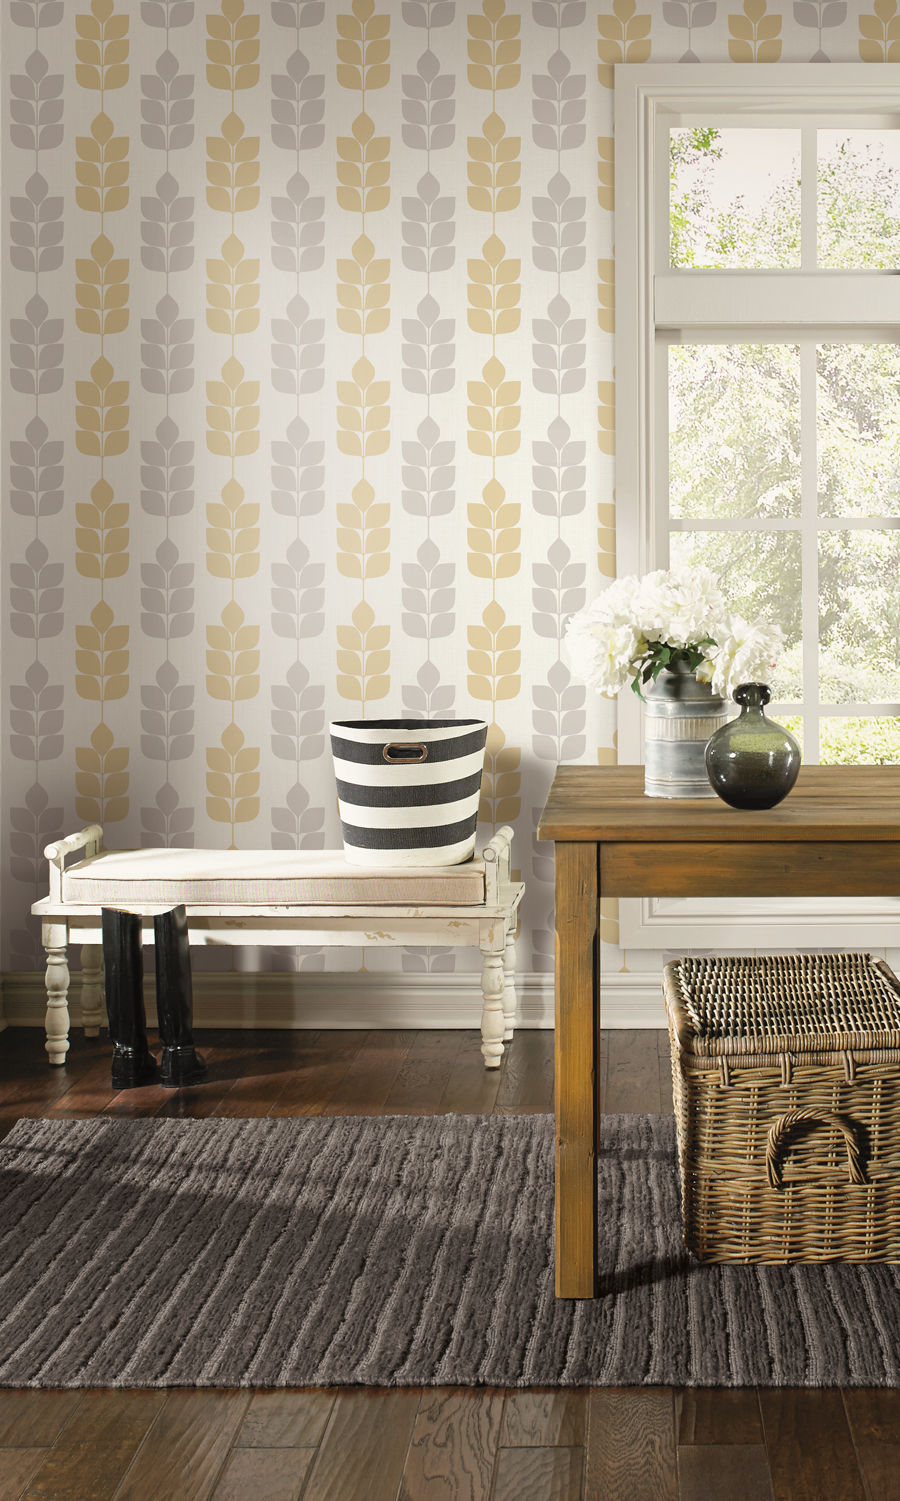 Another-beautiful-Candice-Olson-pattern-Inspired-Elegance-ND-brings-a-fresh-contemporary-des-wallpaper-wp423696-1